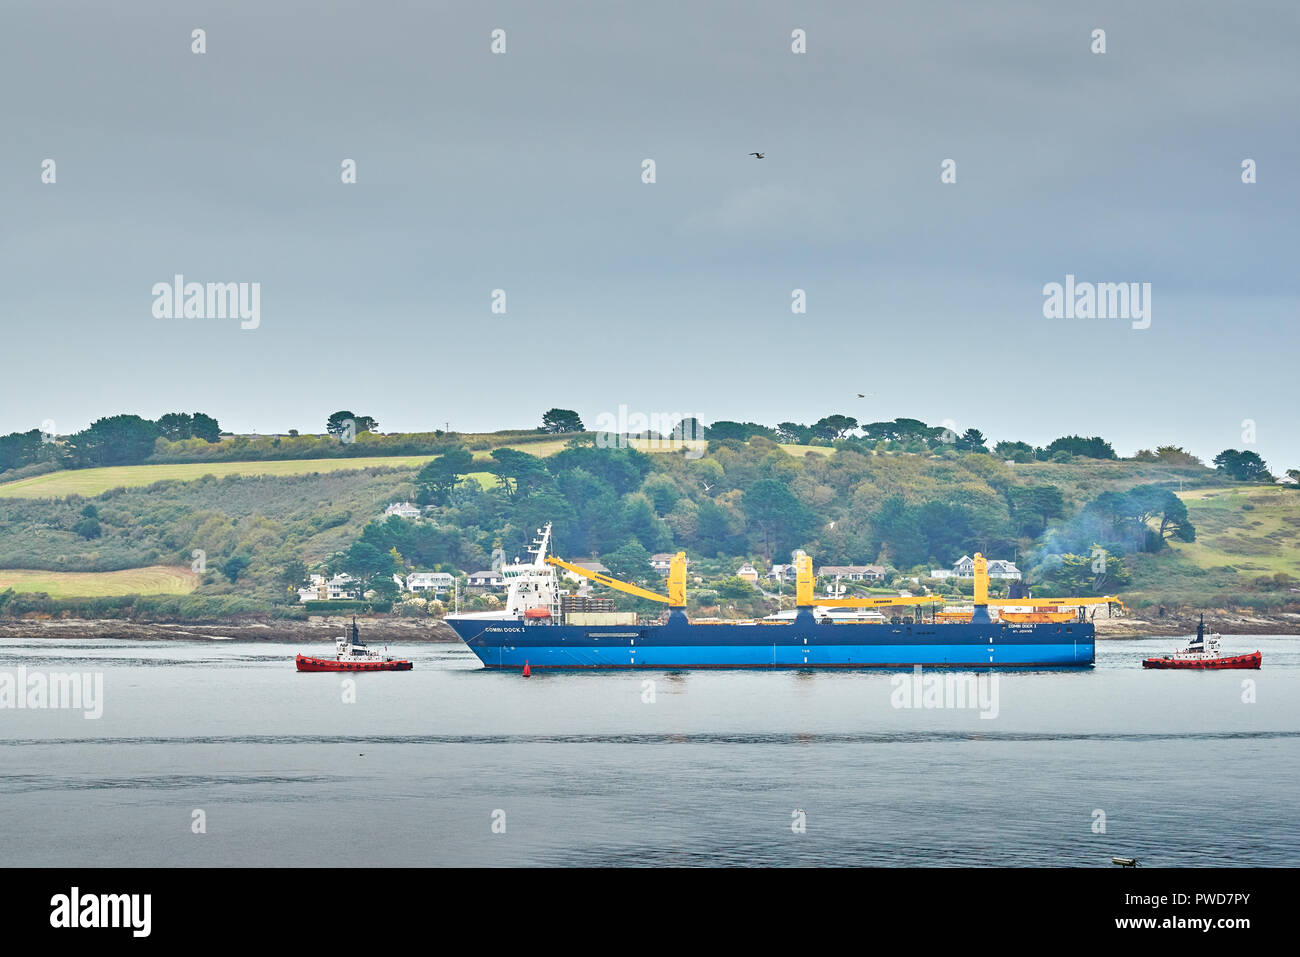 Combi Dock 1, a heavy load carrier ship is taken by two tugs from the English Channel into Carrick Roads waterway, opposite Falmouth, with the Roselan - Stock Image